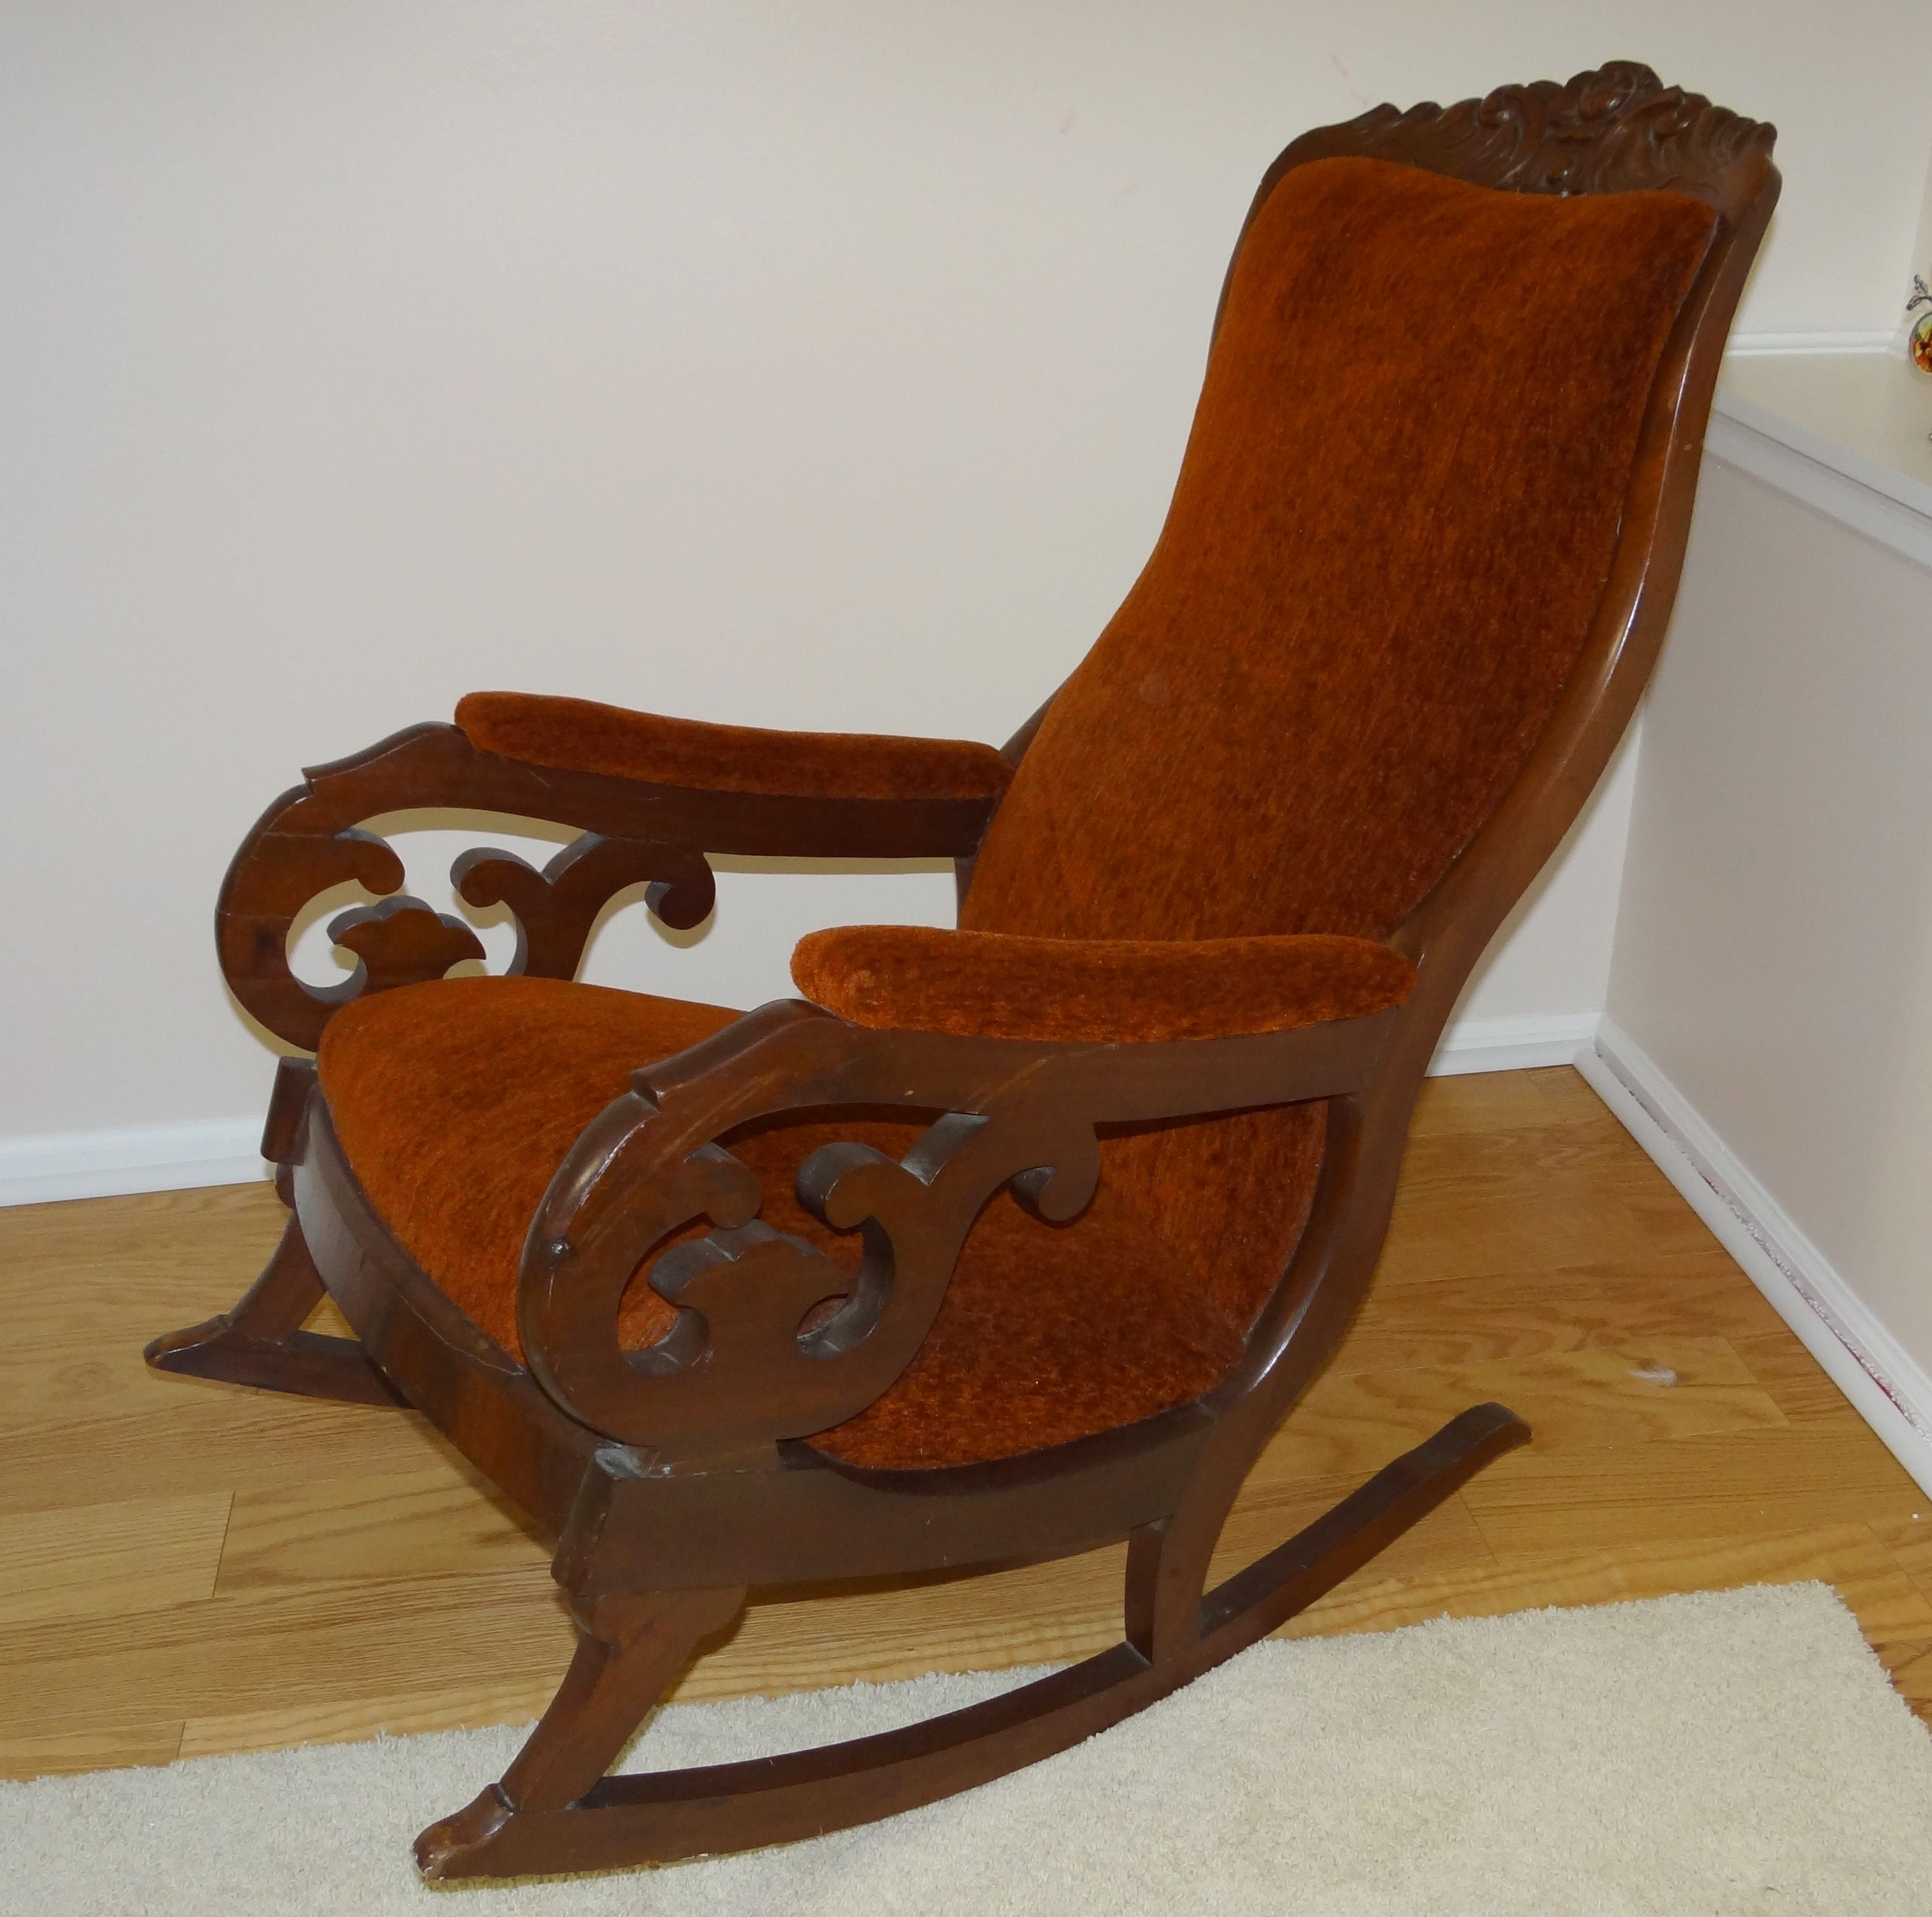 Find great deals on ebay for vintage rocking chair in antique